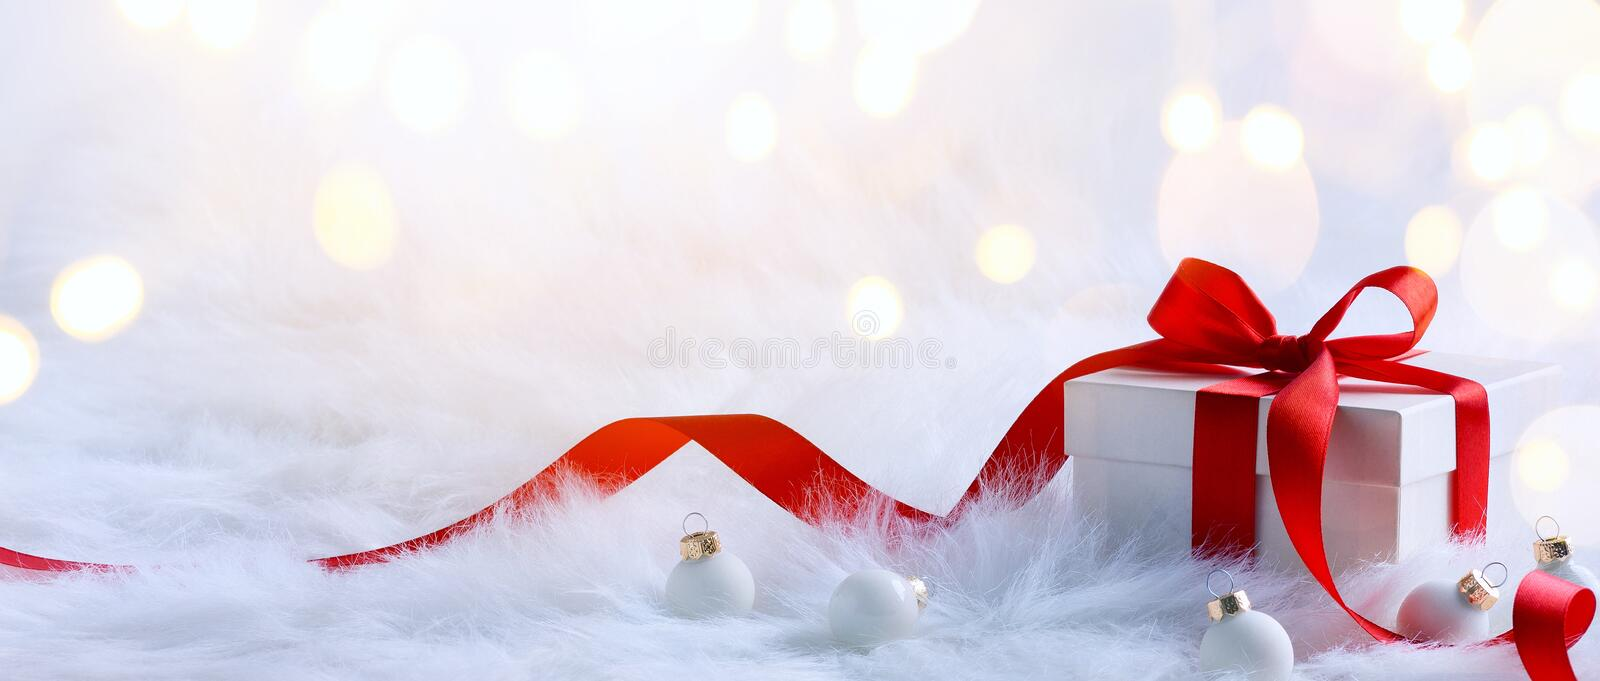 Christmas holidays composition on light background with copy spa royalty free stock images